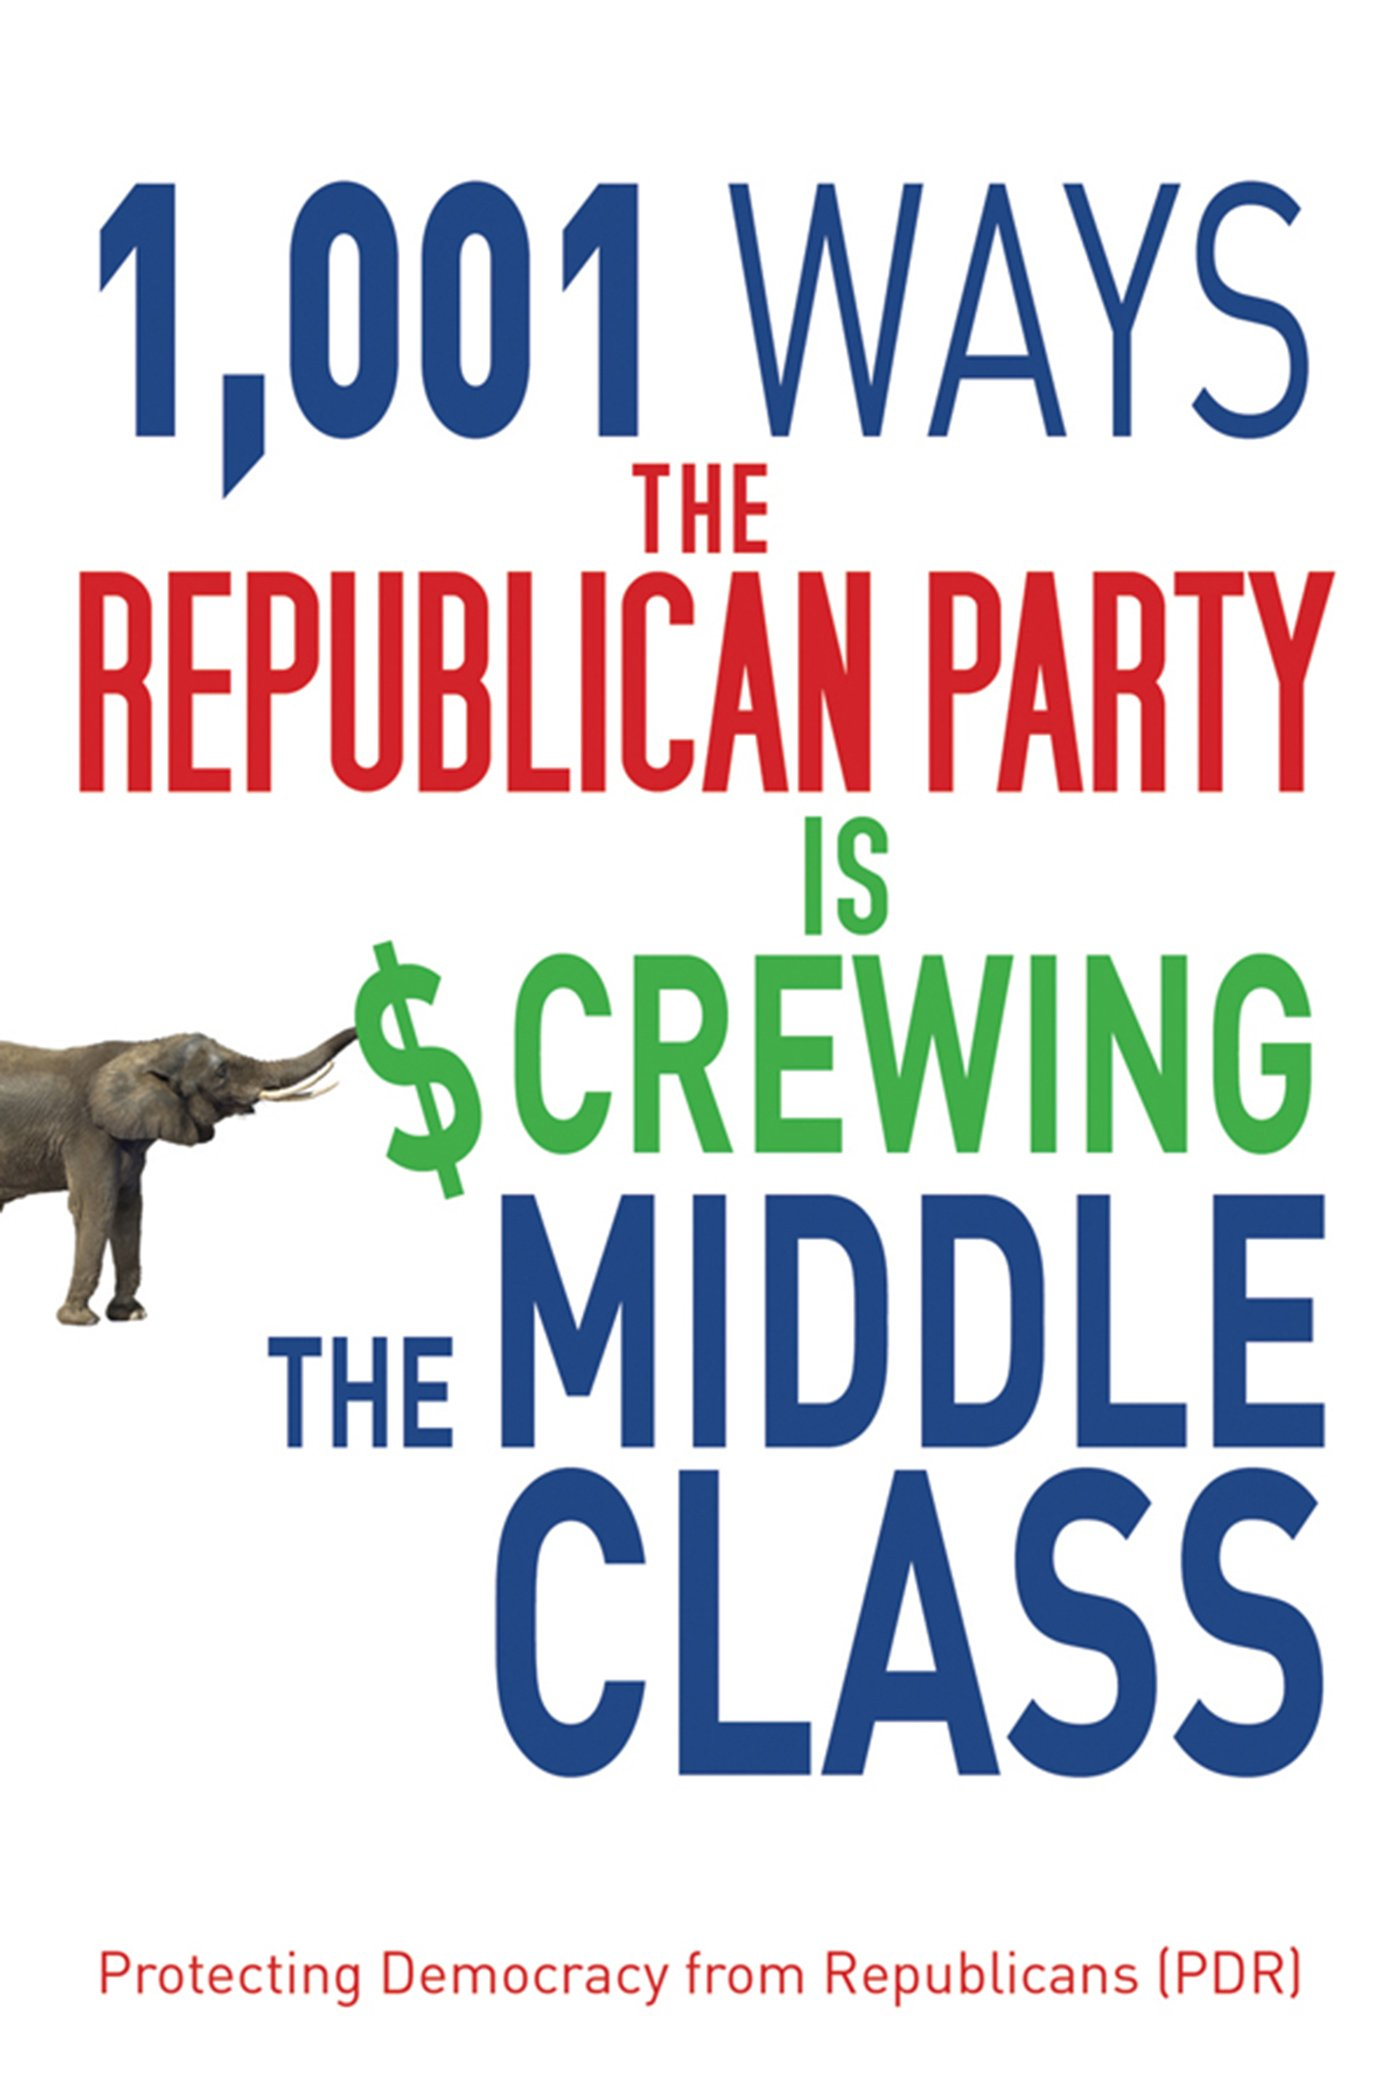 1, 001 Ways the Republican Party is Screwing the Middle Class: Protecting  Democracy from Republicans (PDR): 9781616087456: Amazon.com: Books